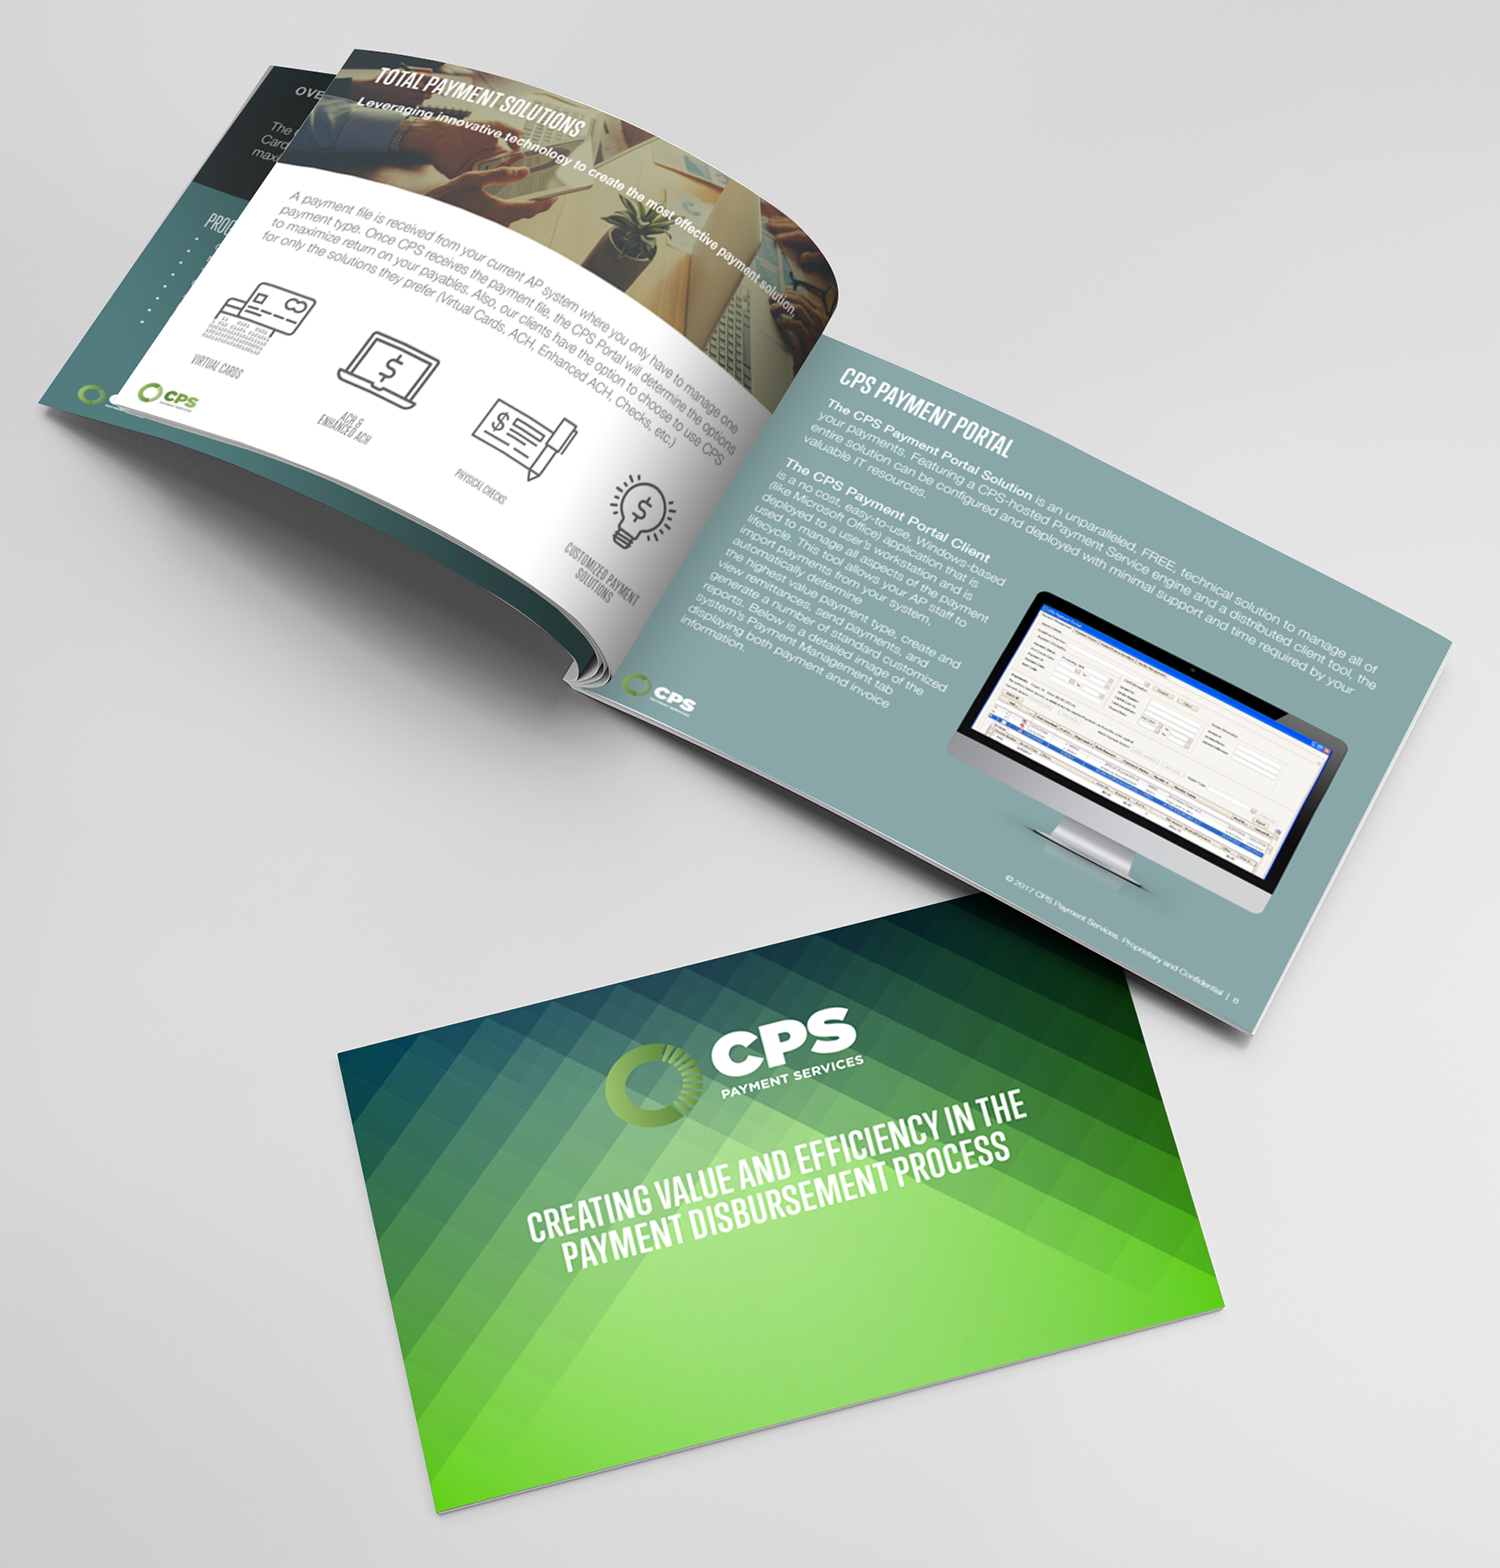 CPA_BOOK_MOCKUP_shutterstock_261046874_1500.png